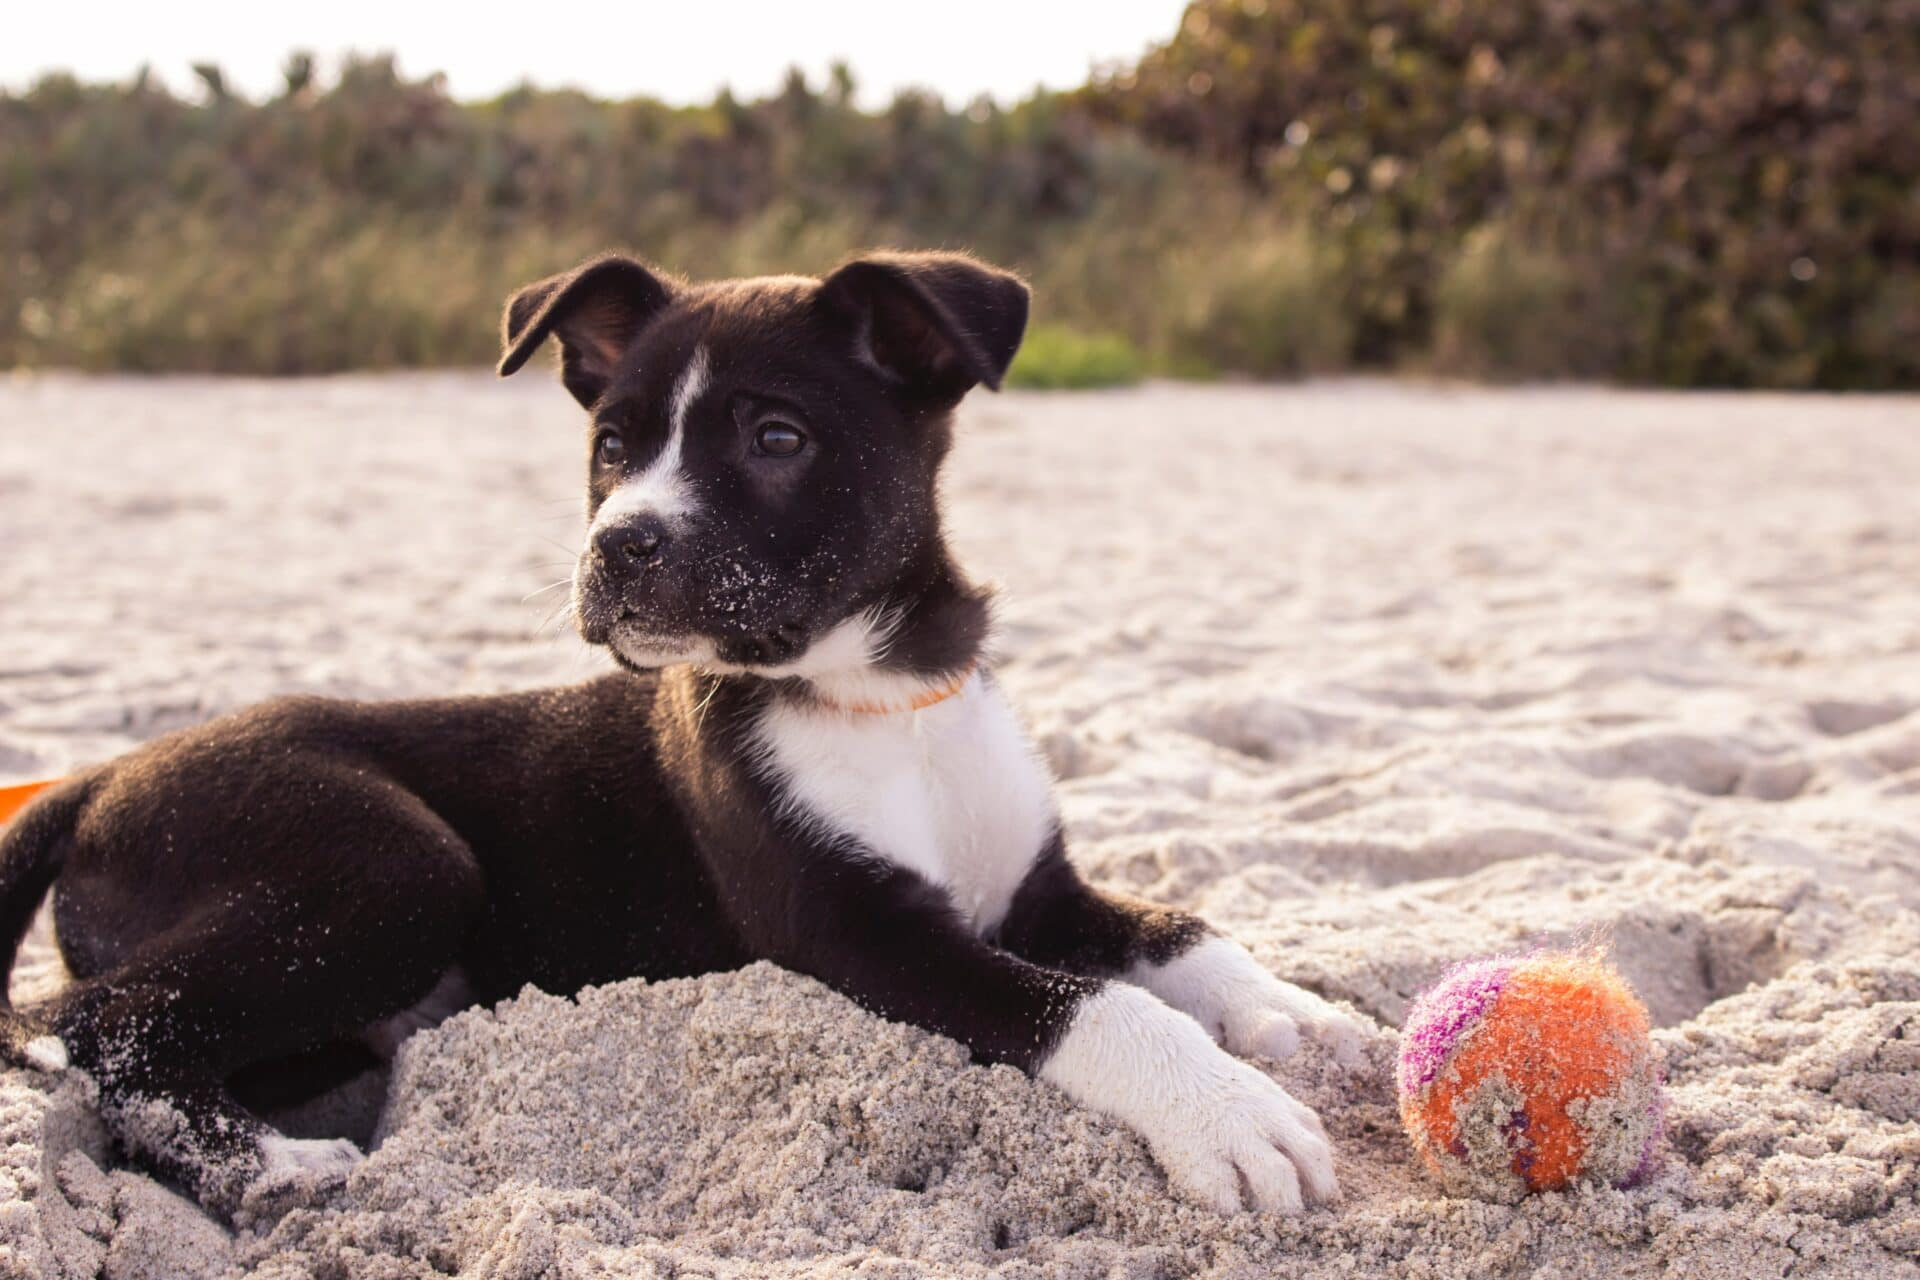 Washable rugs help deal with sand from pets